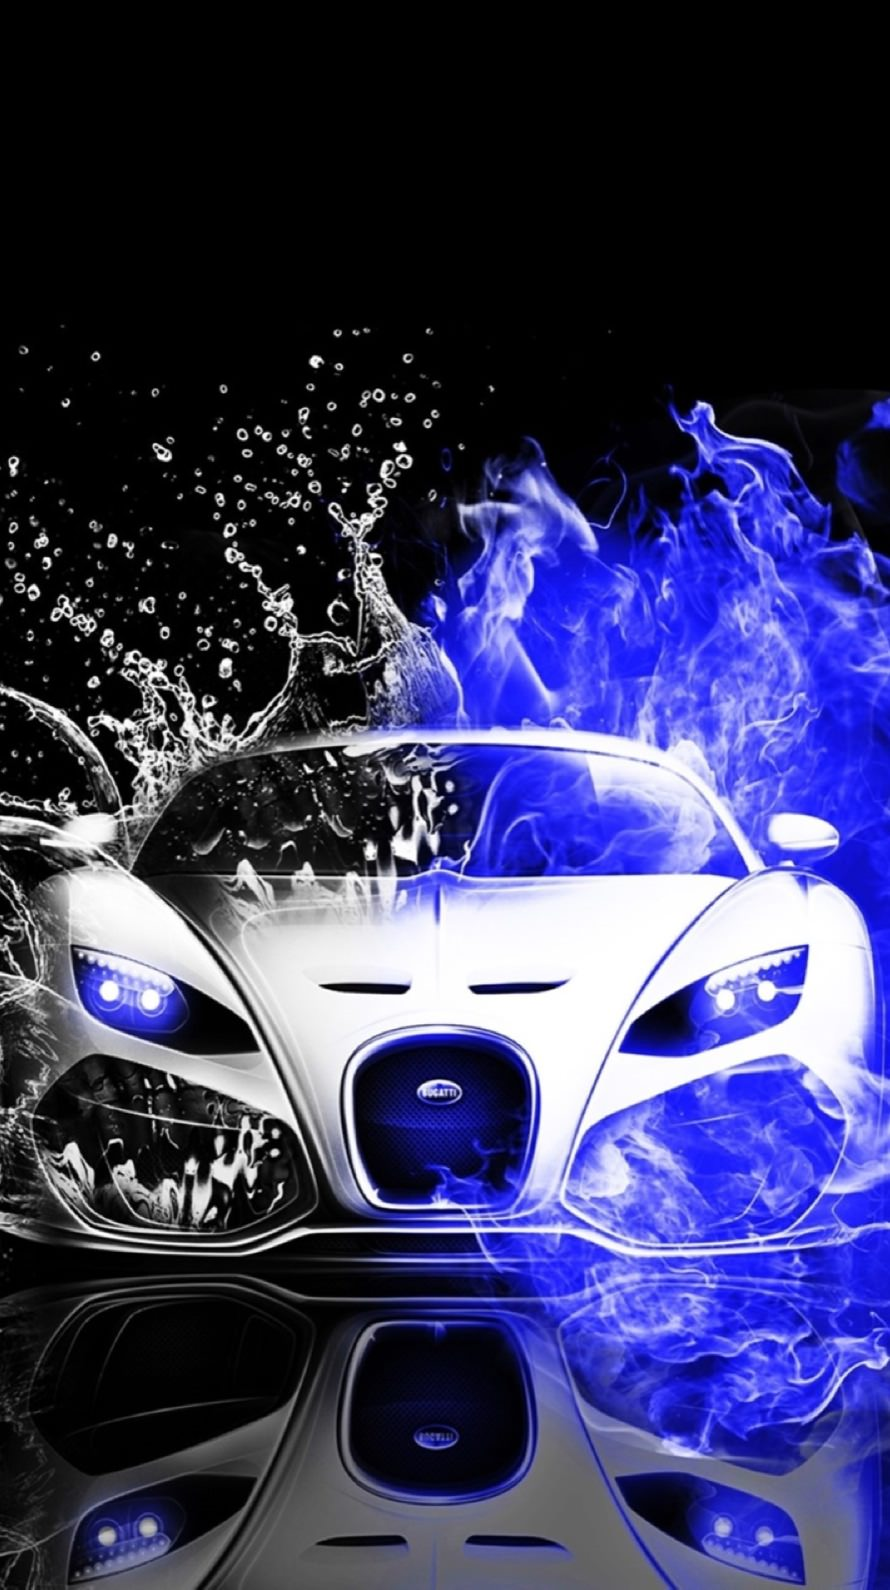 Free Download Cool Cars Blue Water Black And White Wallpapersc